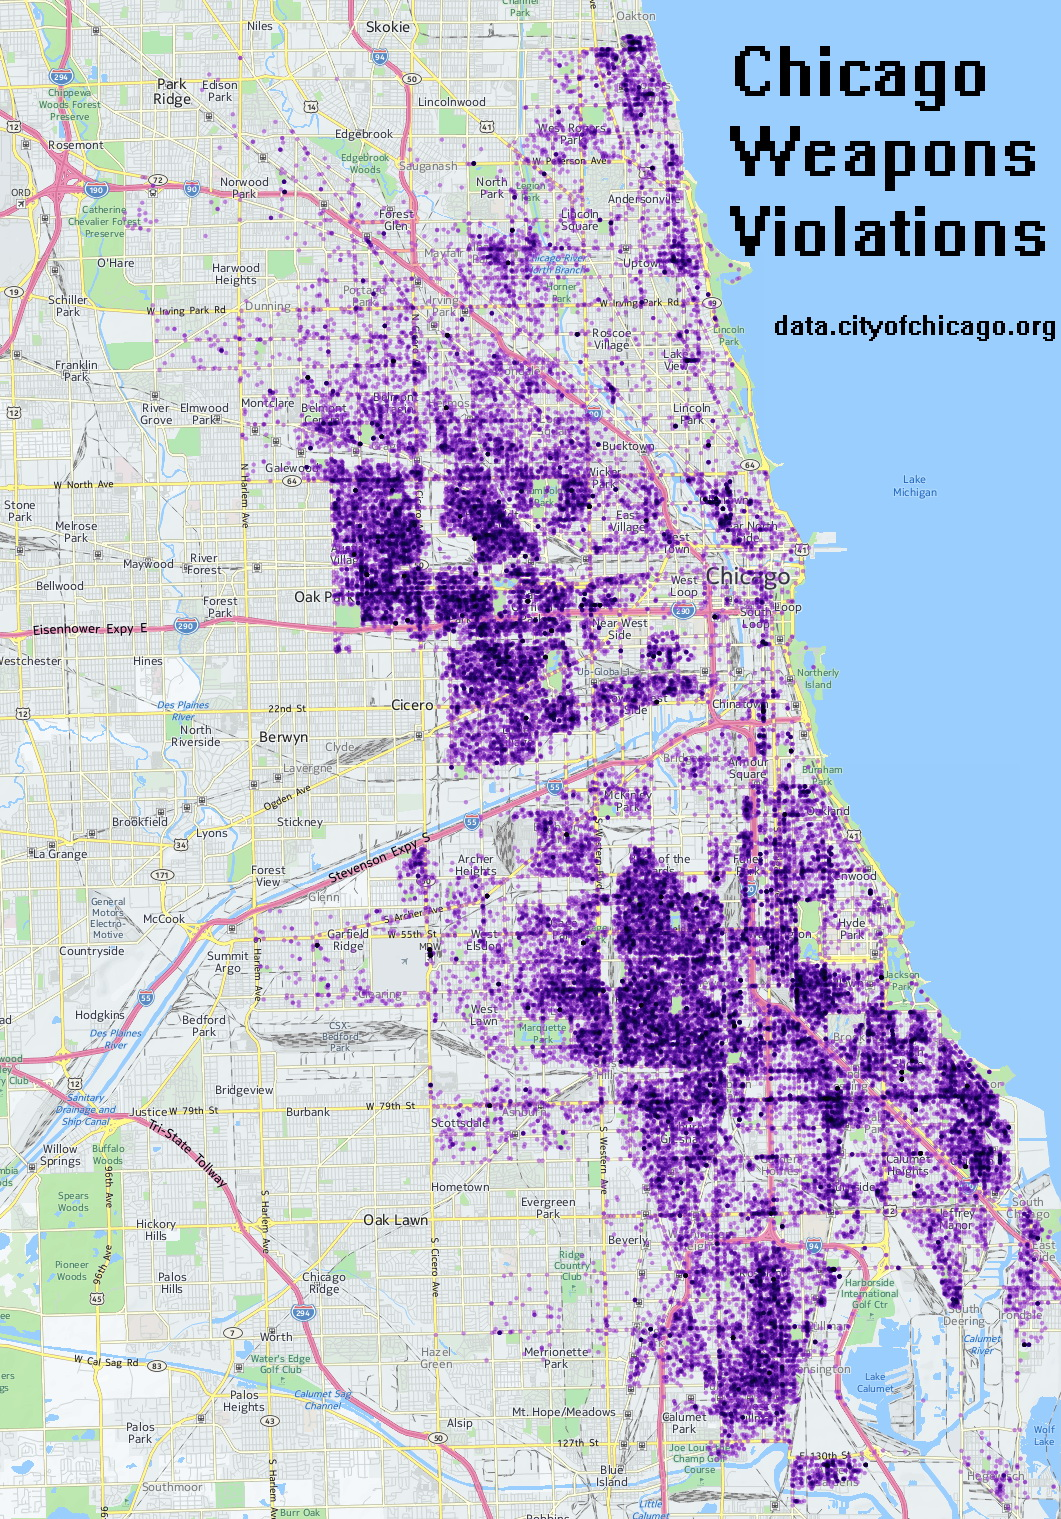 Chicago weapons violations